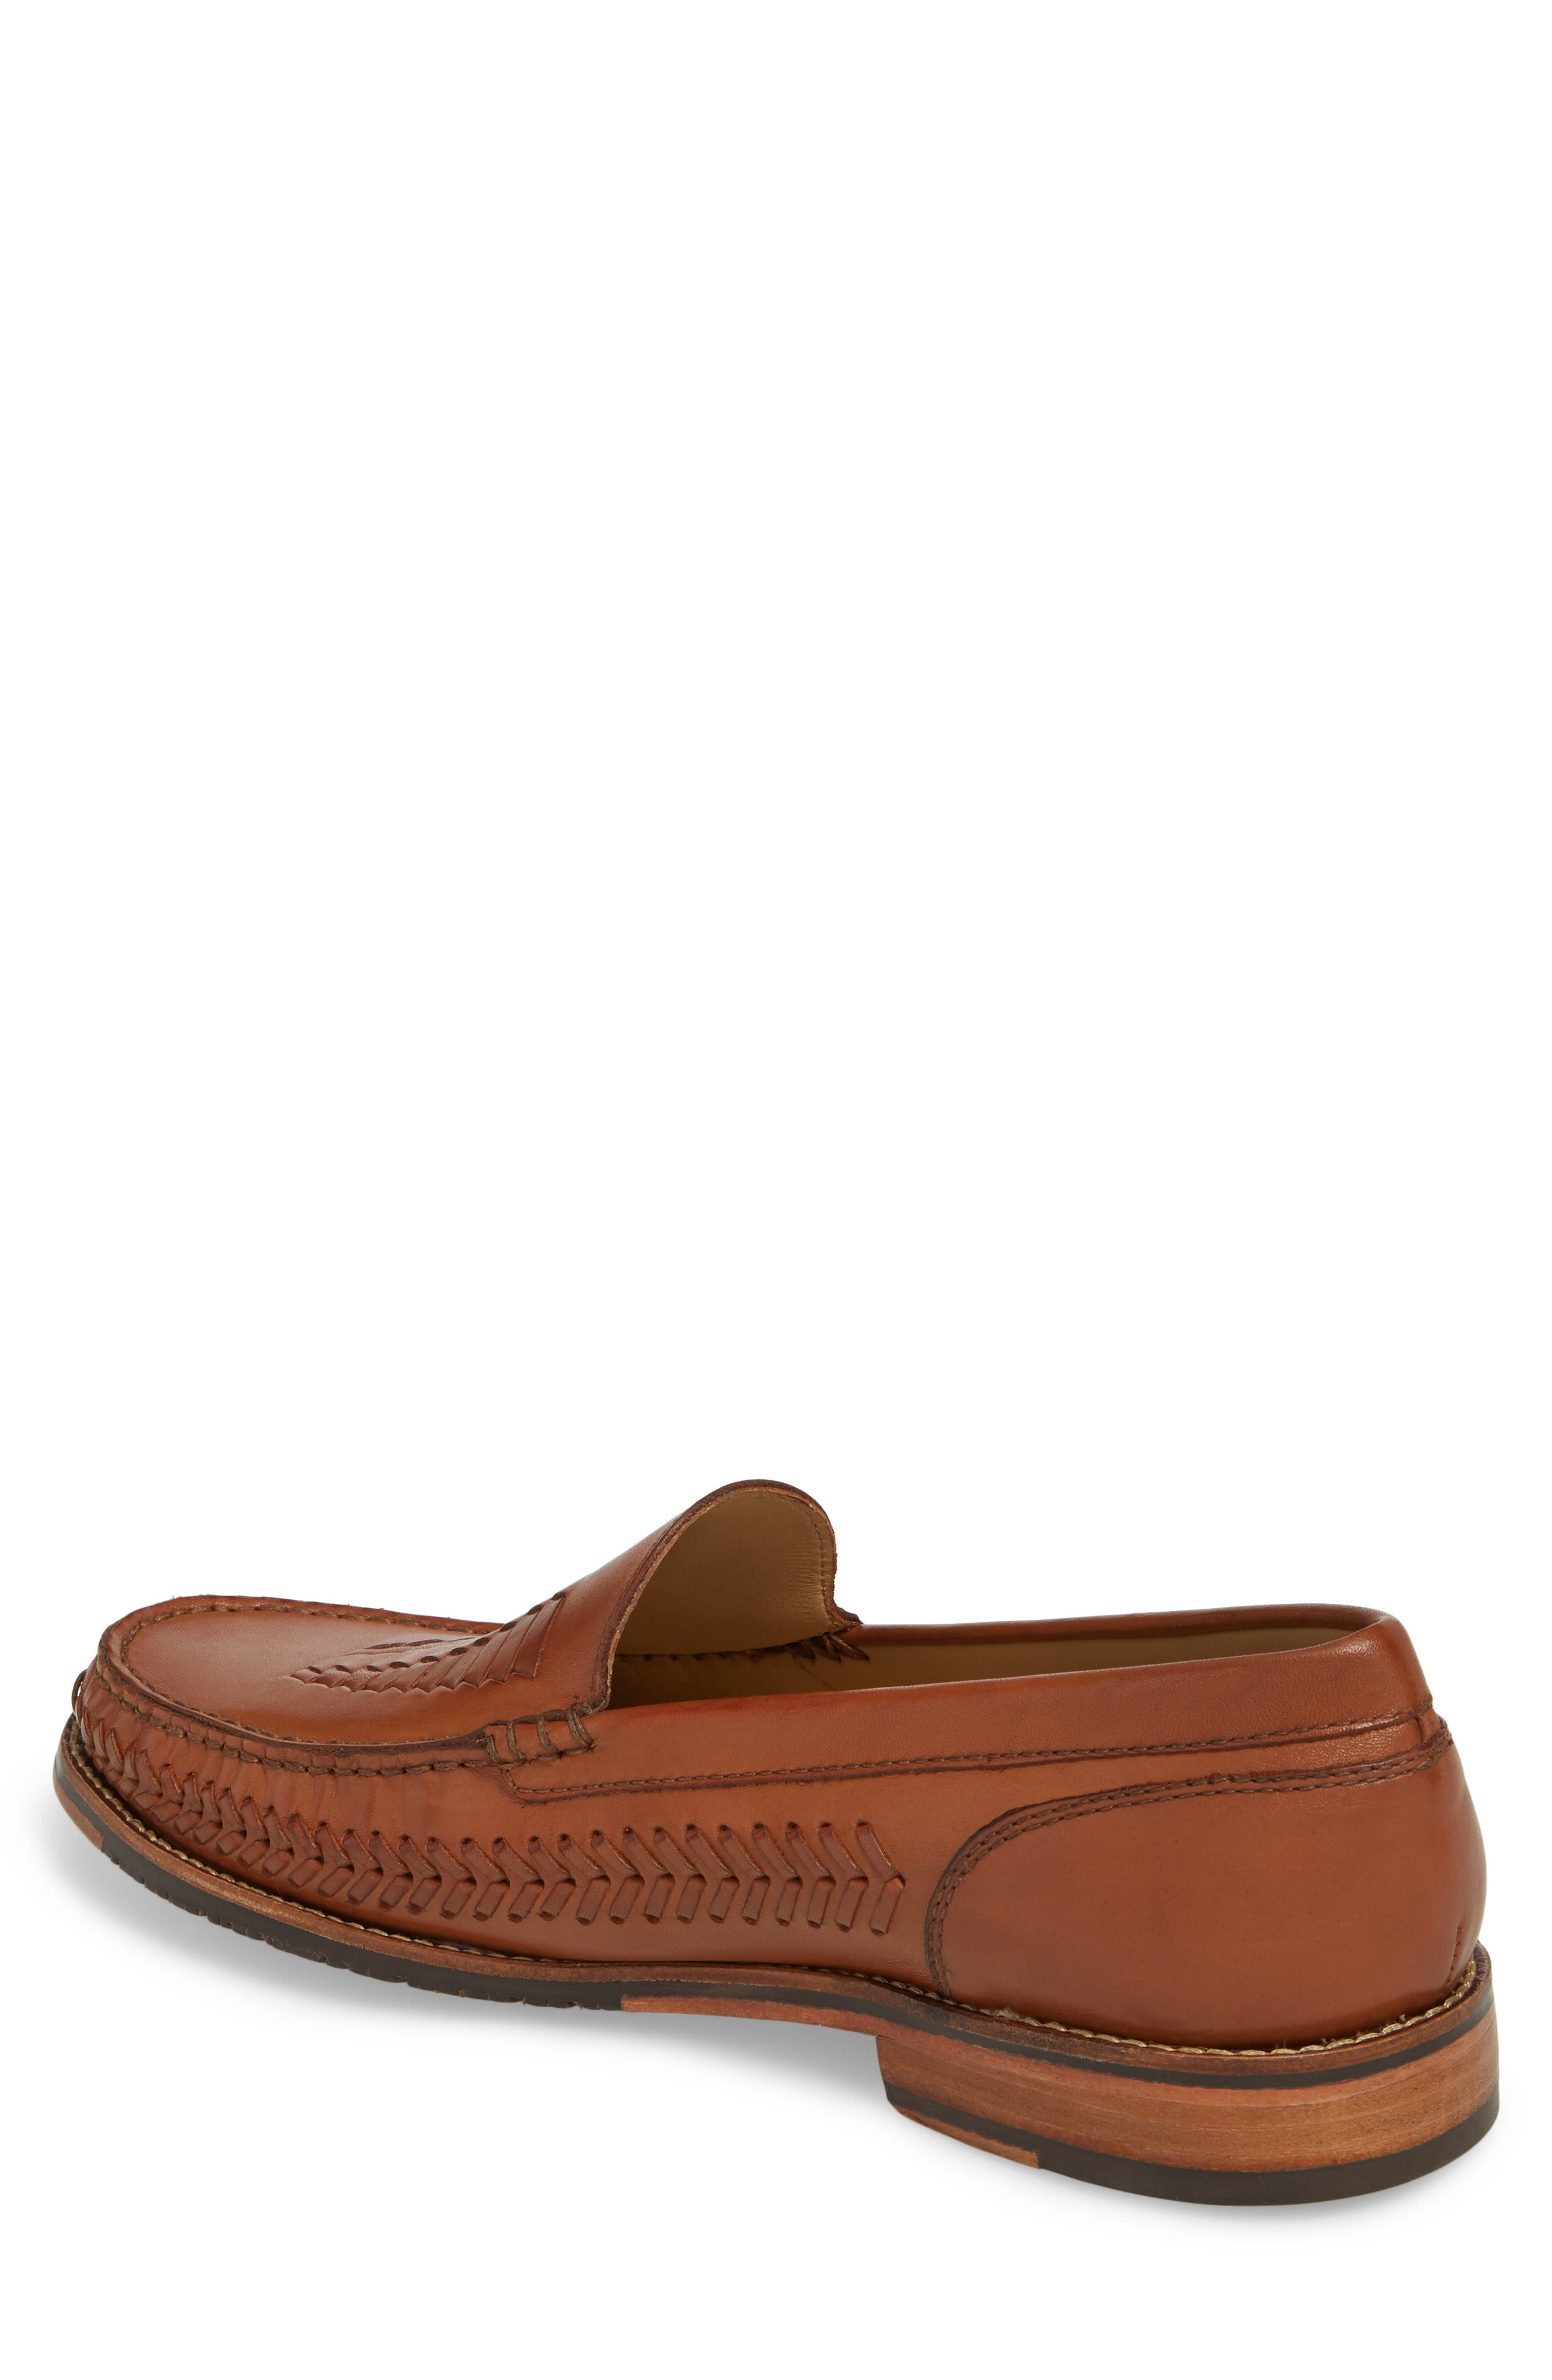 Hasslington Woven Venetian Loafer,                             Alternate thumbnail 2, color,                             TAN LEATHER